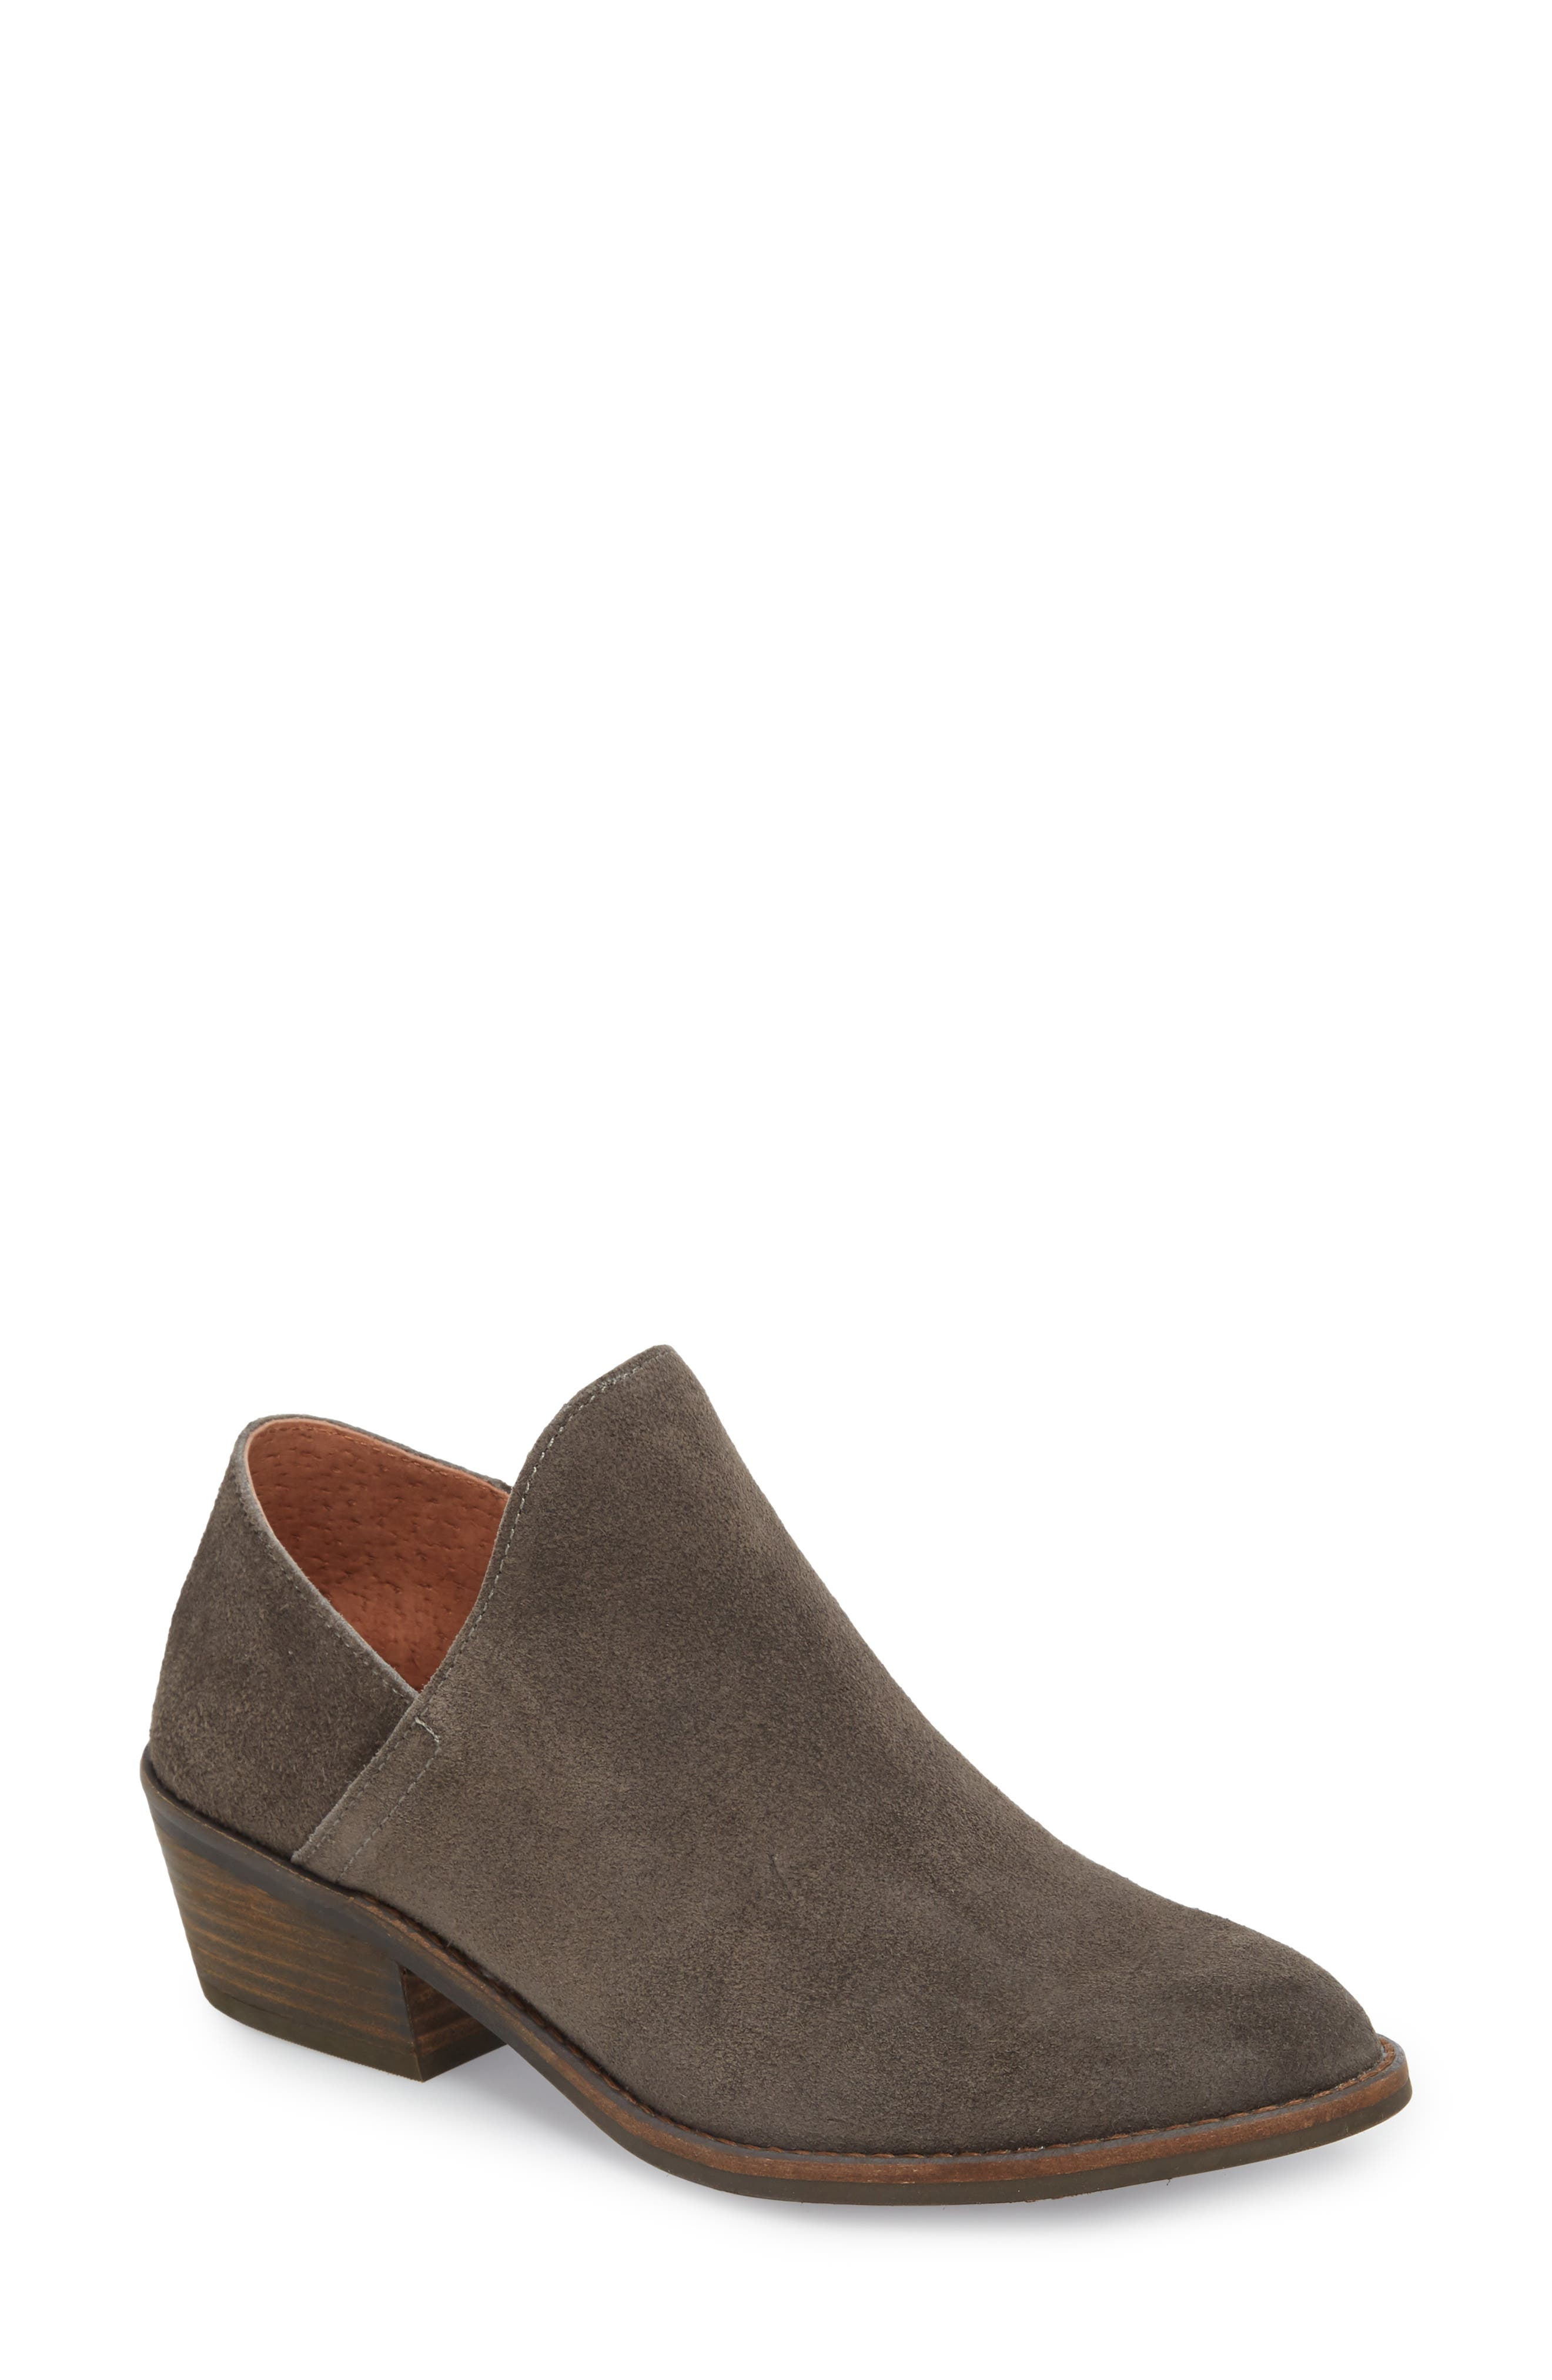 Fausst Bootie,                         Main,                         color, PERISCOPE LEATHER